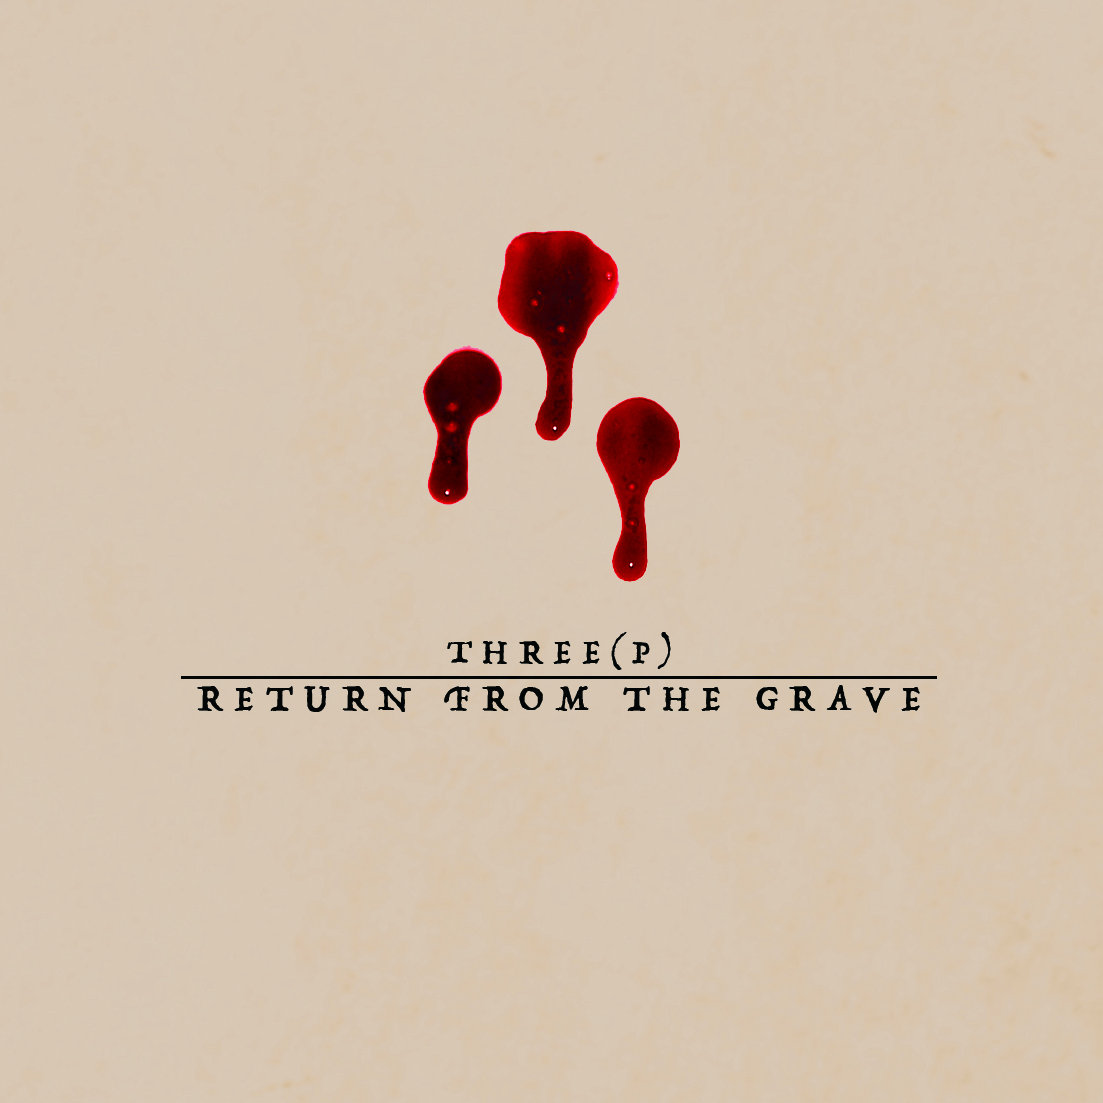 return from the grave three(p)